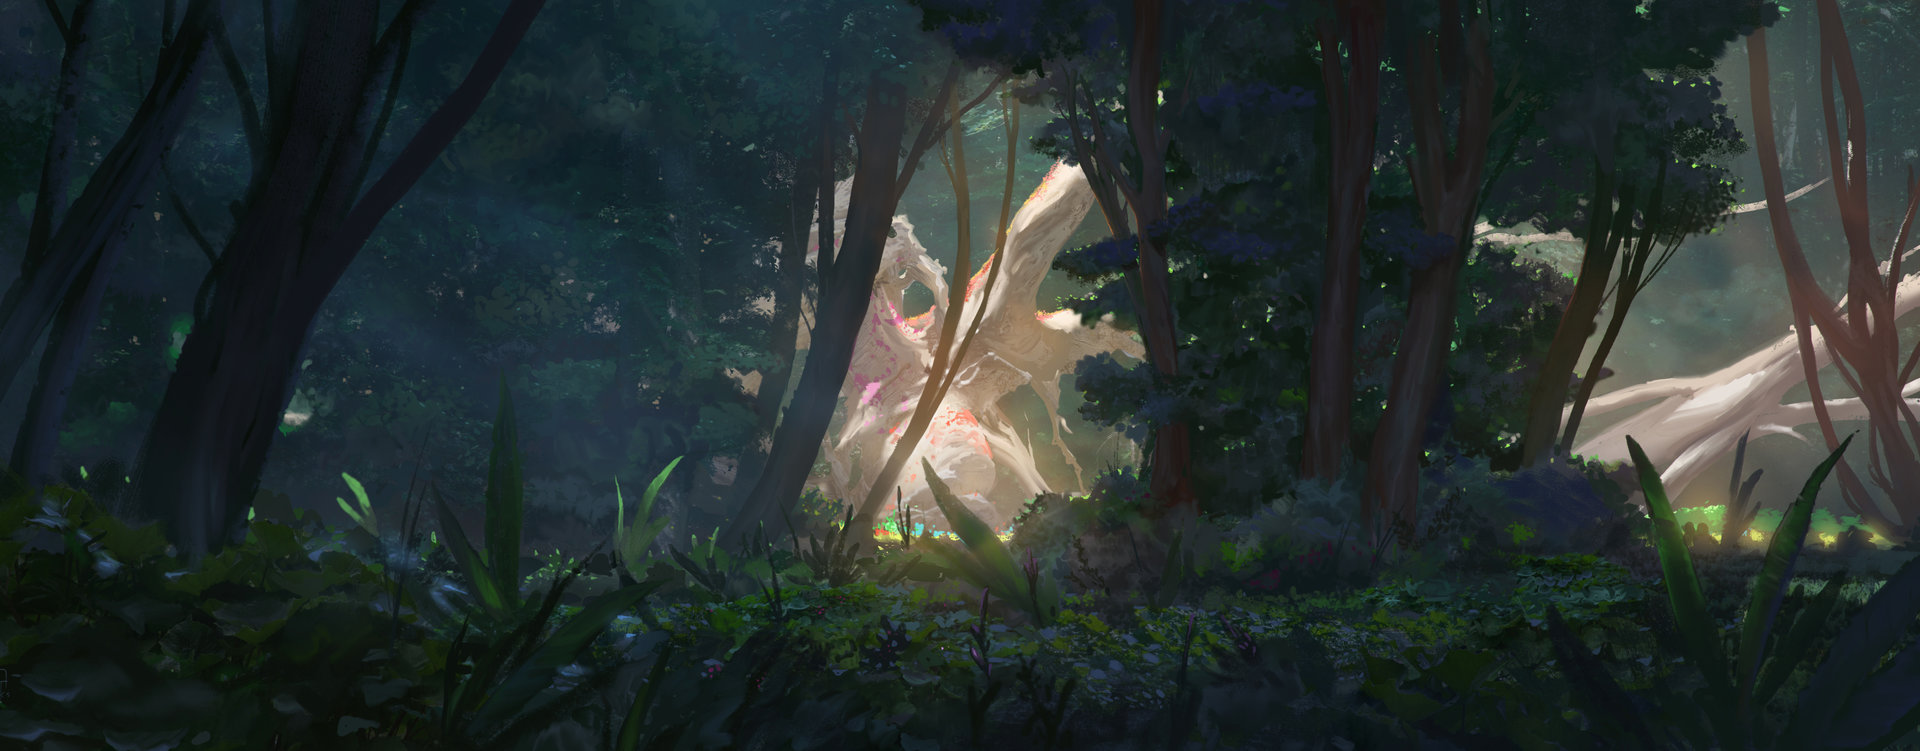 Alex Konstad Digital Painting Obliskura Forest